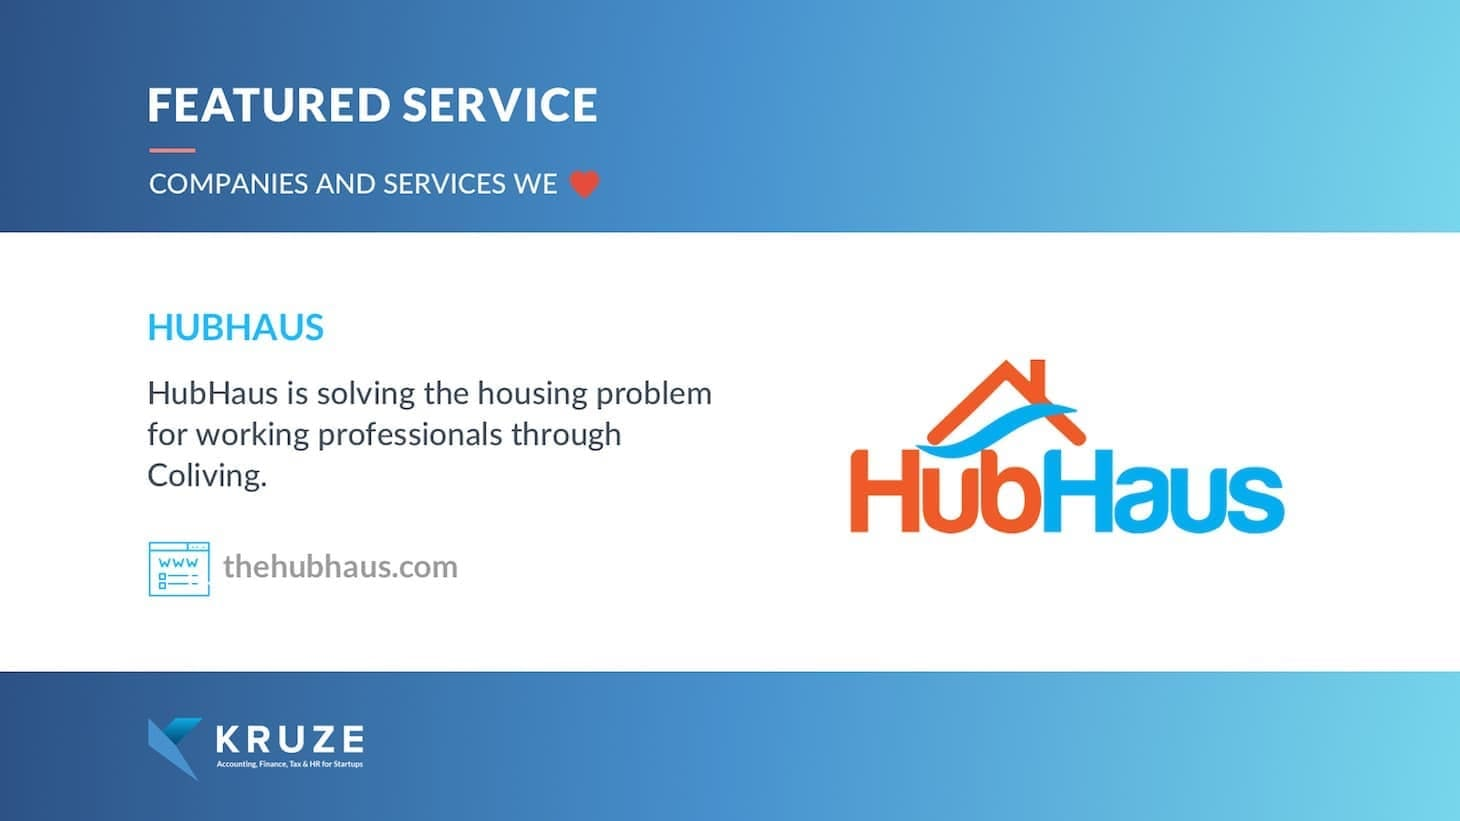 Featured Service - HubHaus